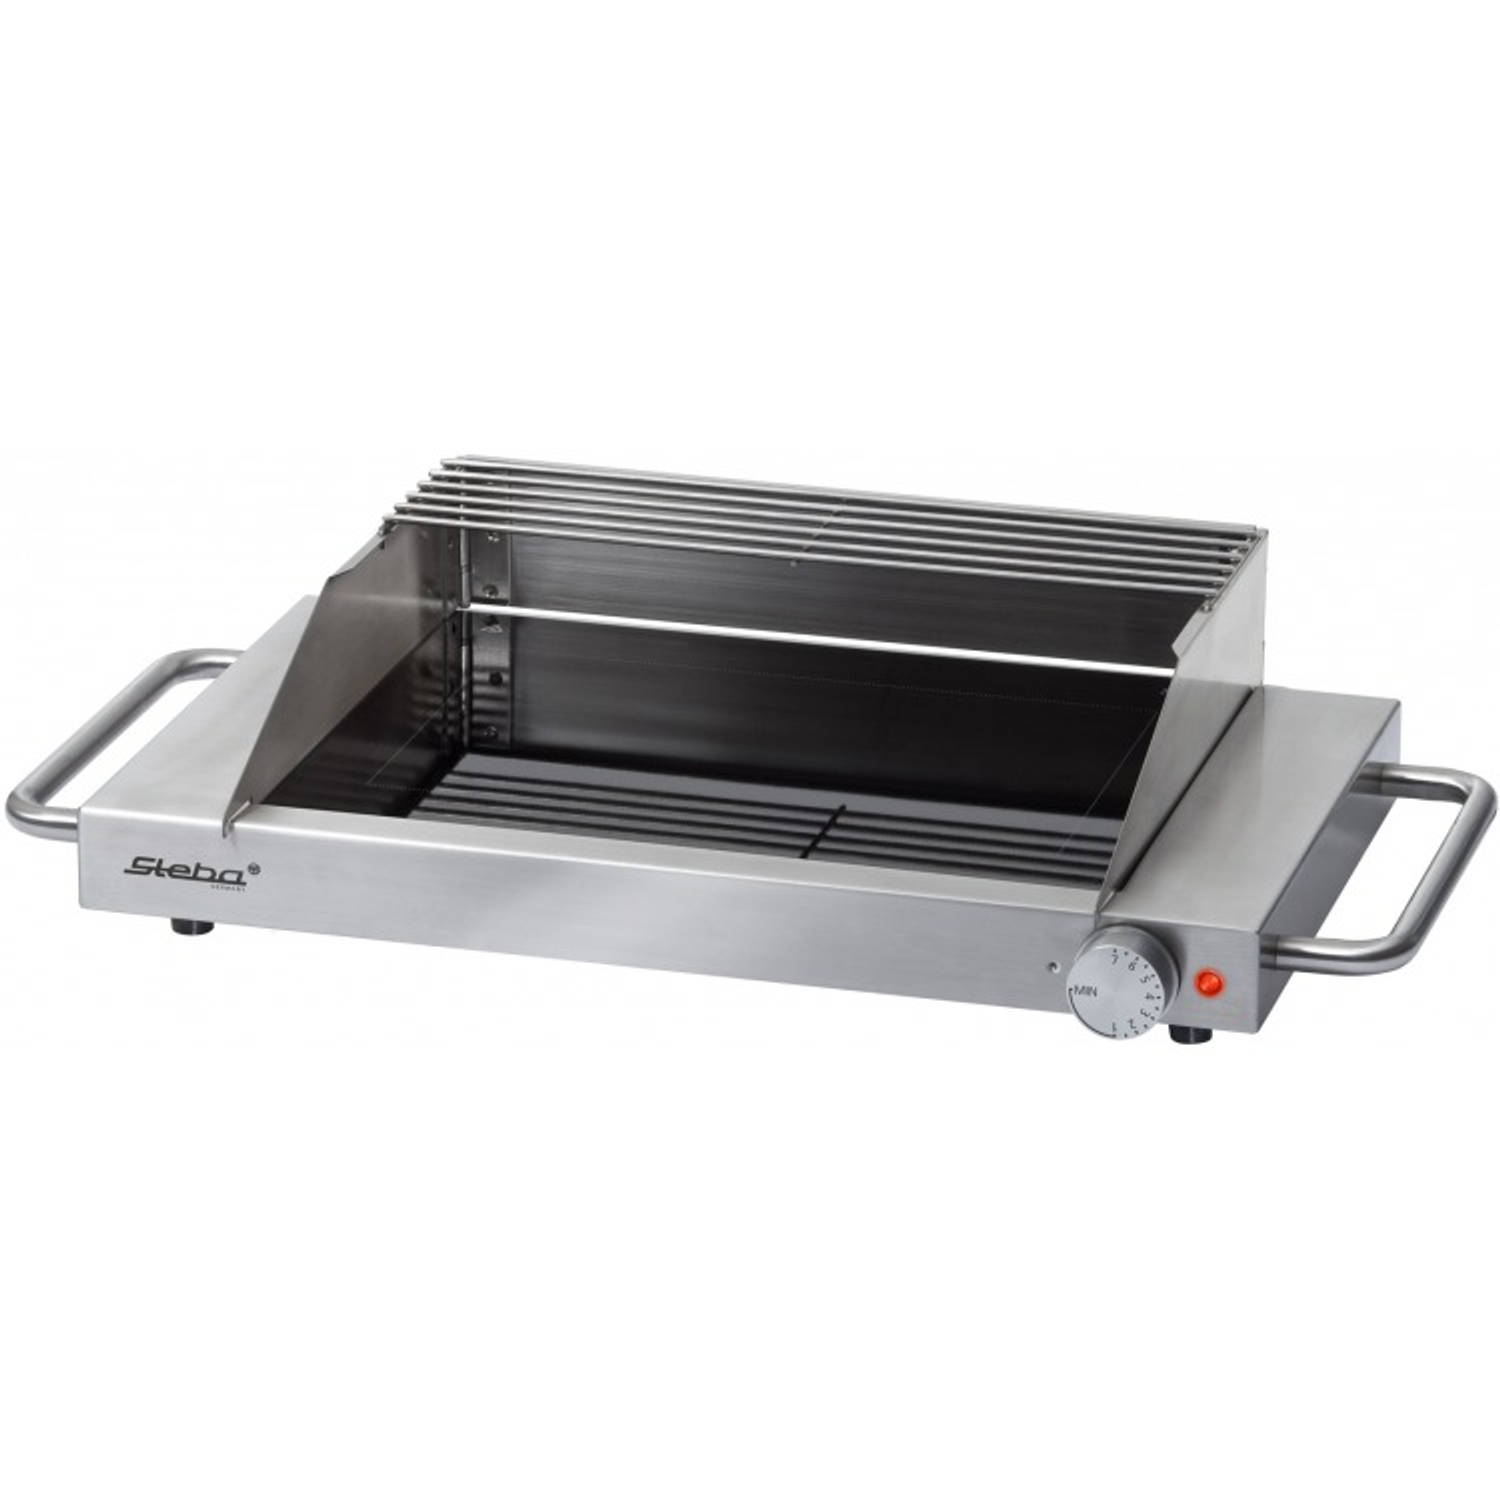 Steba glasgrill gp 3 s bakplaat